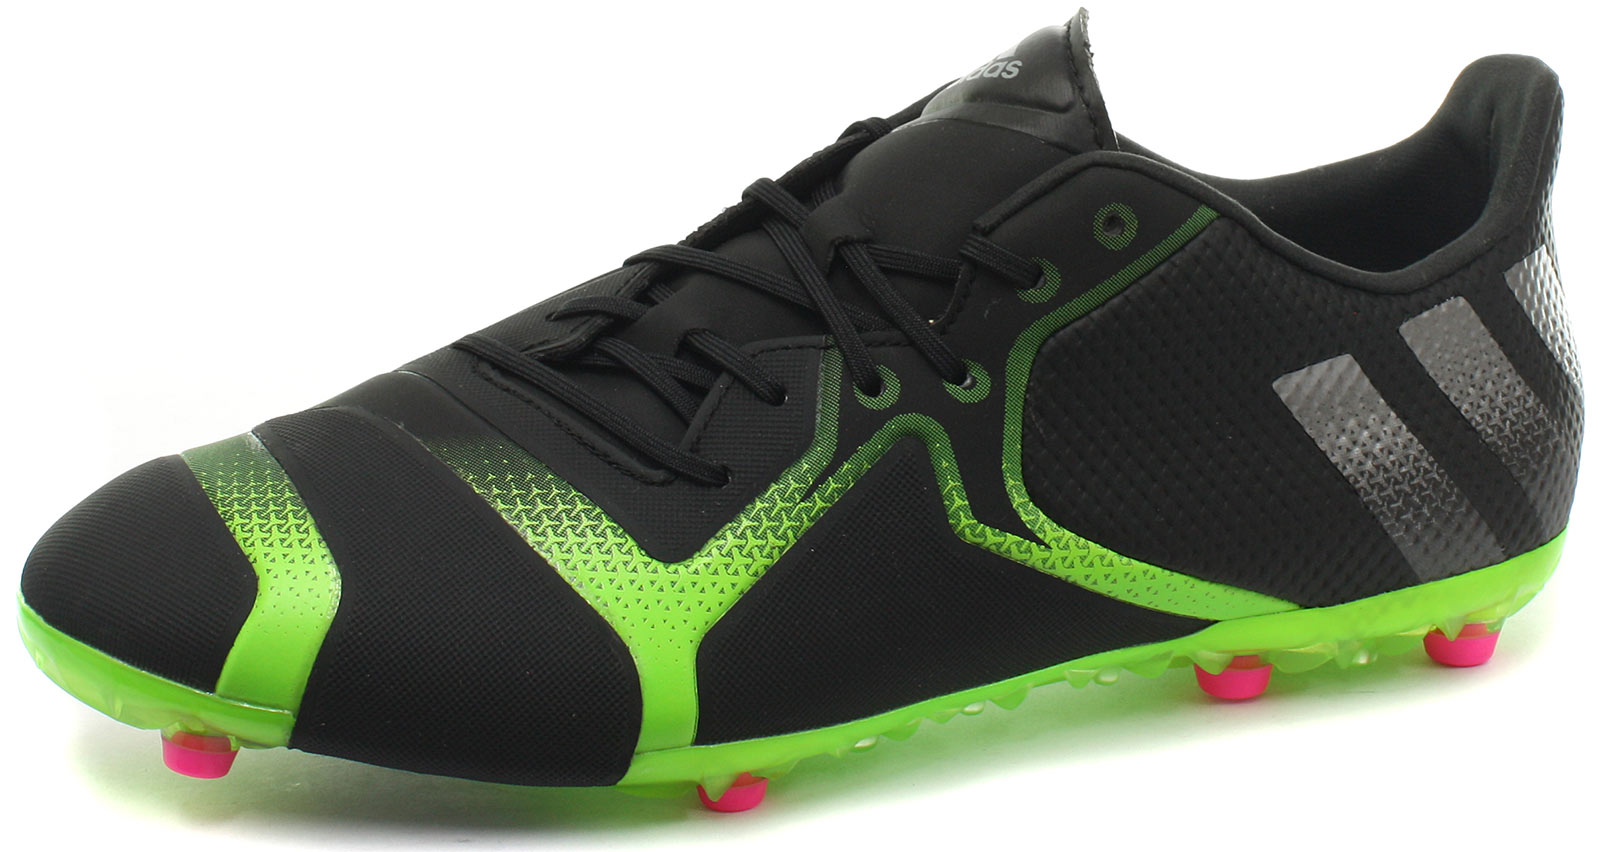 new concept 6bd5a 149a1 Image is loading New-adidas-Ace-16-TKRZ-Mens-Artificial-Grass-